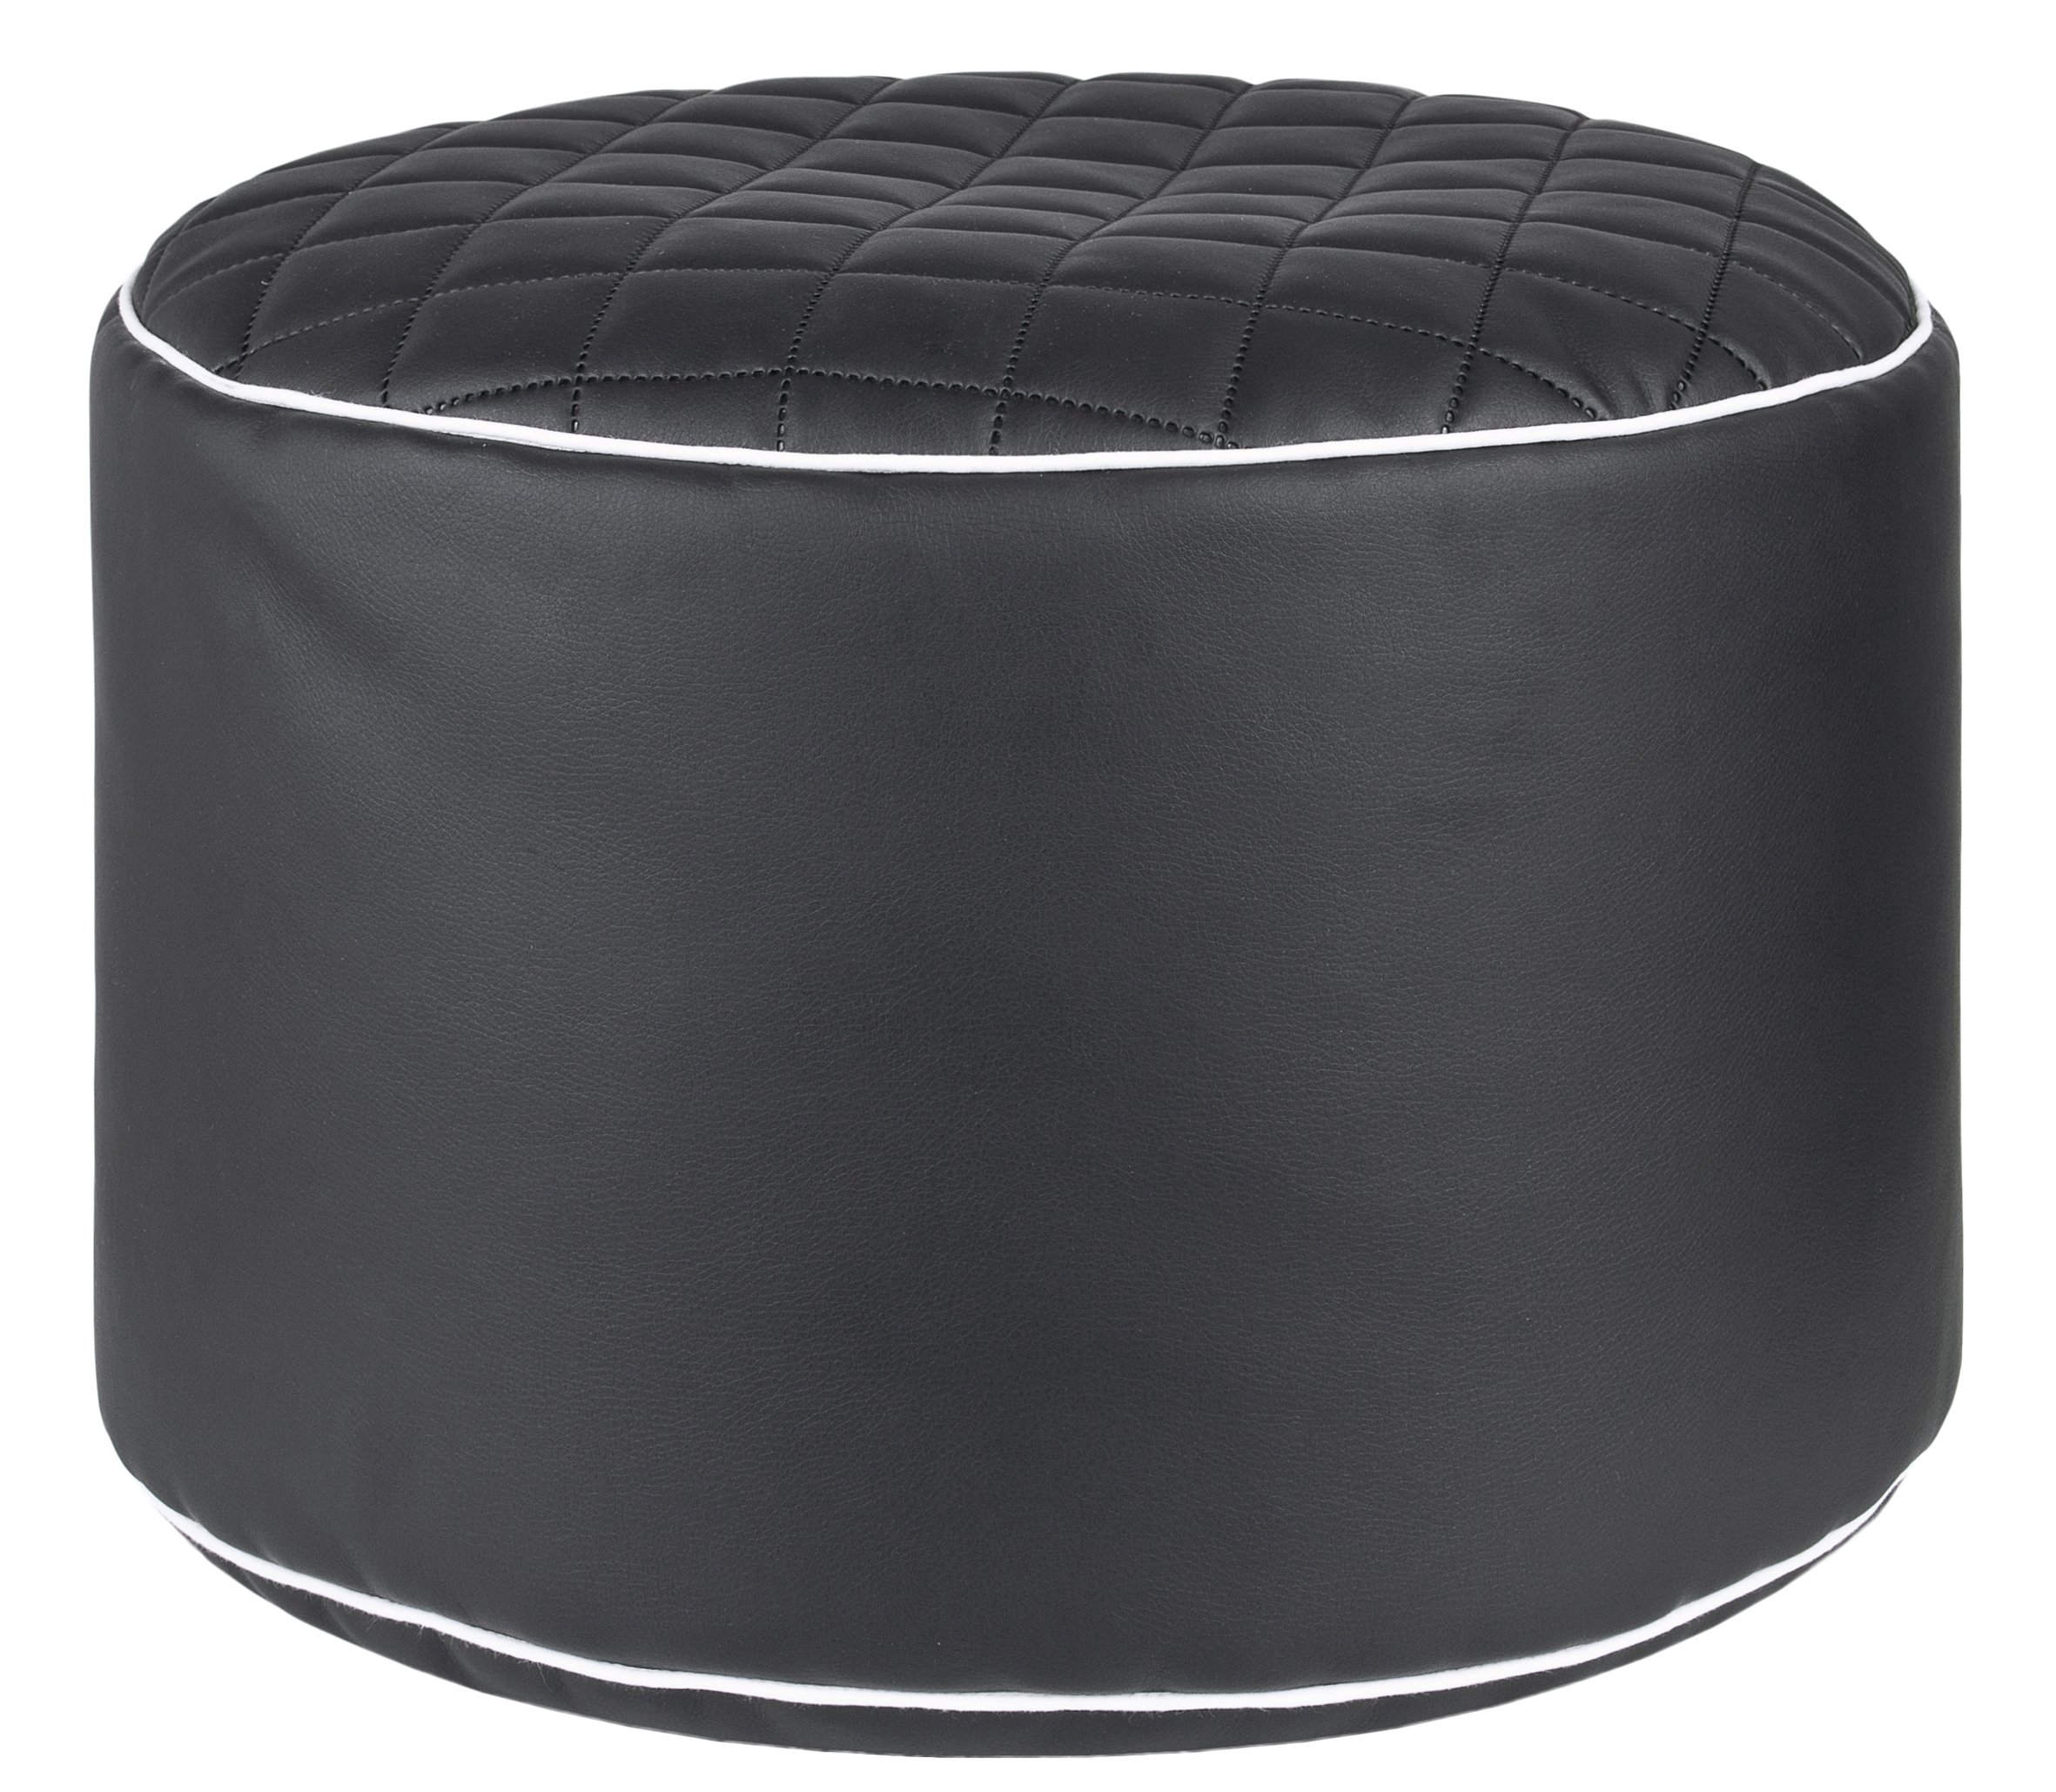 Gouchee Home Dotcom Modo Tap Collection Contemporary Faux Leather Fabric Upholstered Round Pouf/Ottoman, Black